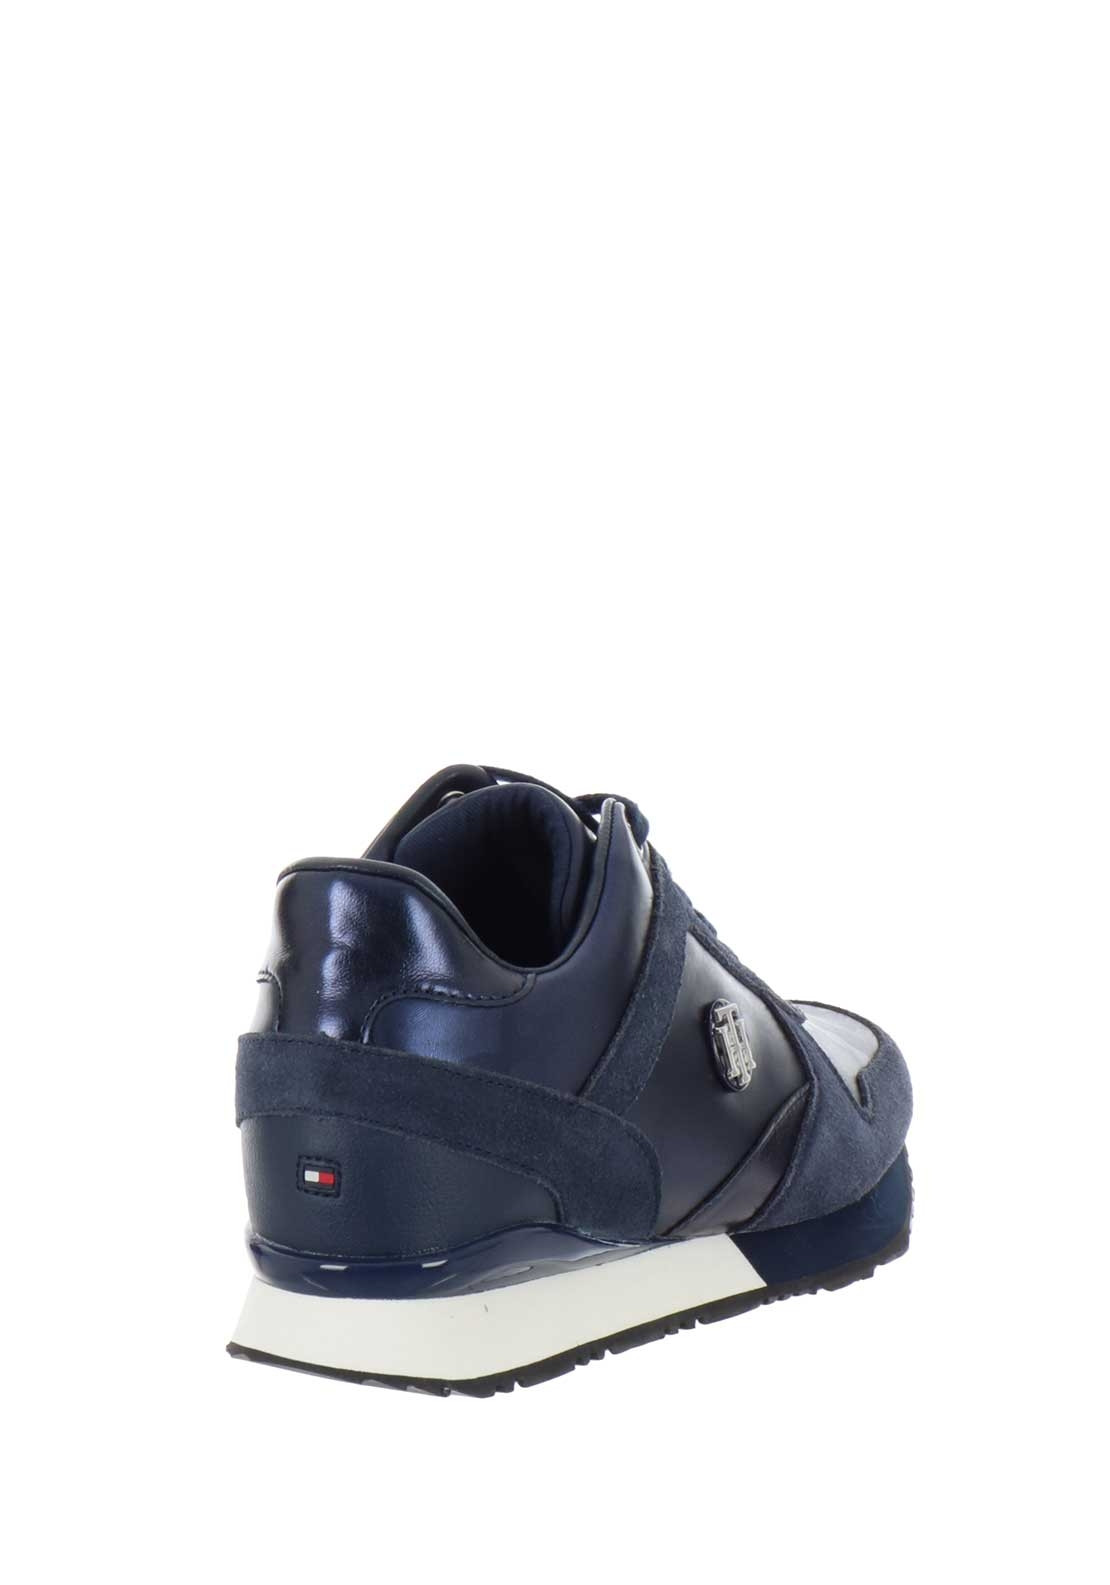 c40f77529c Tommy Hilfiger Womens Camo Wedged Trainers, Navy | McElhinneys